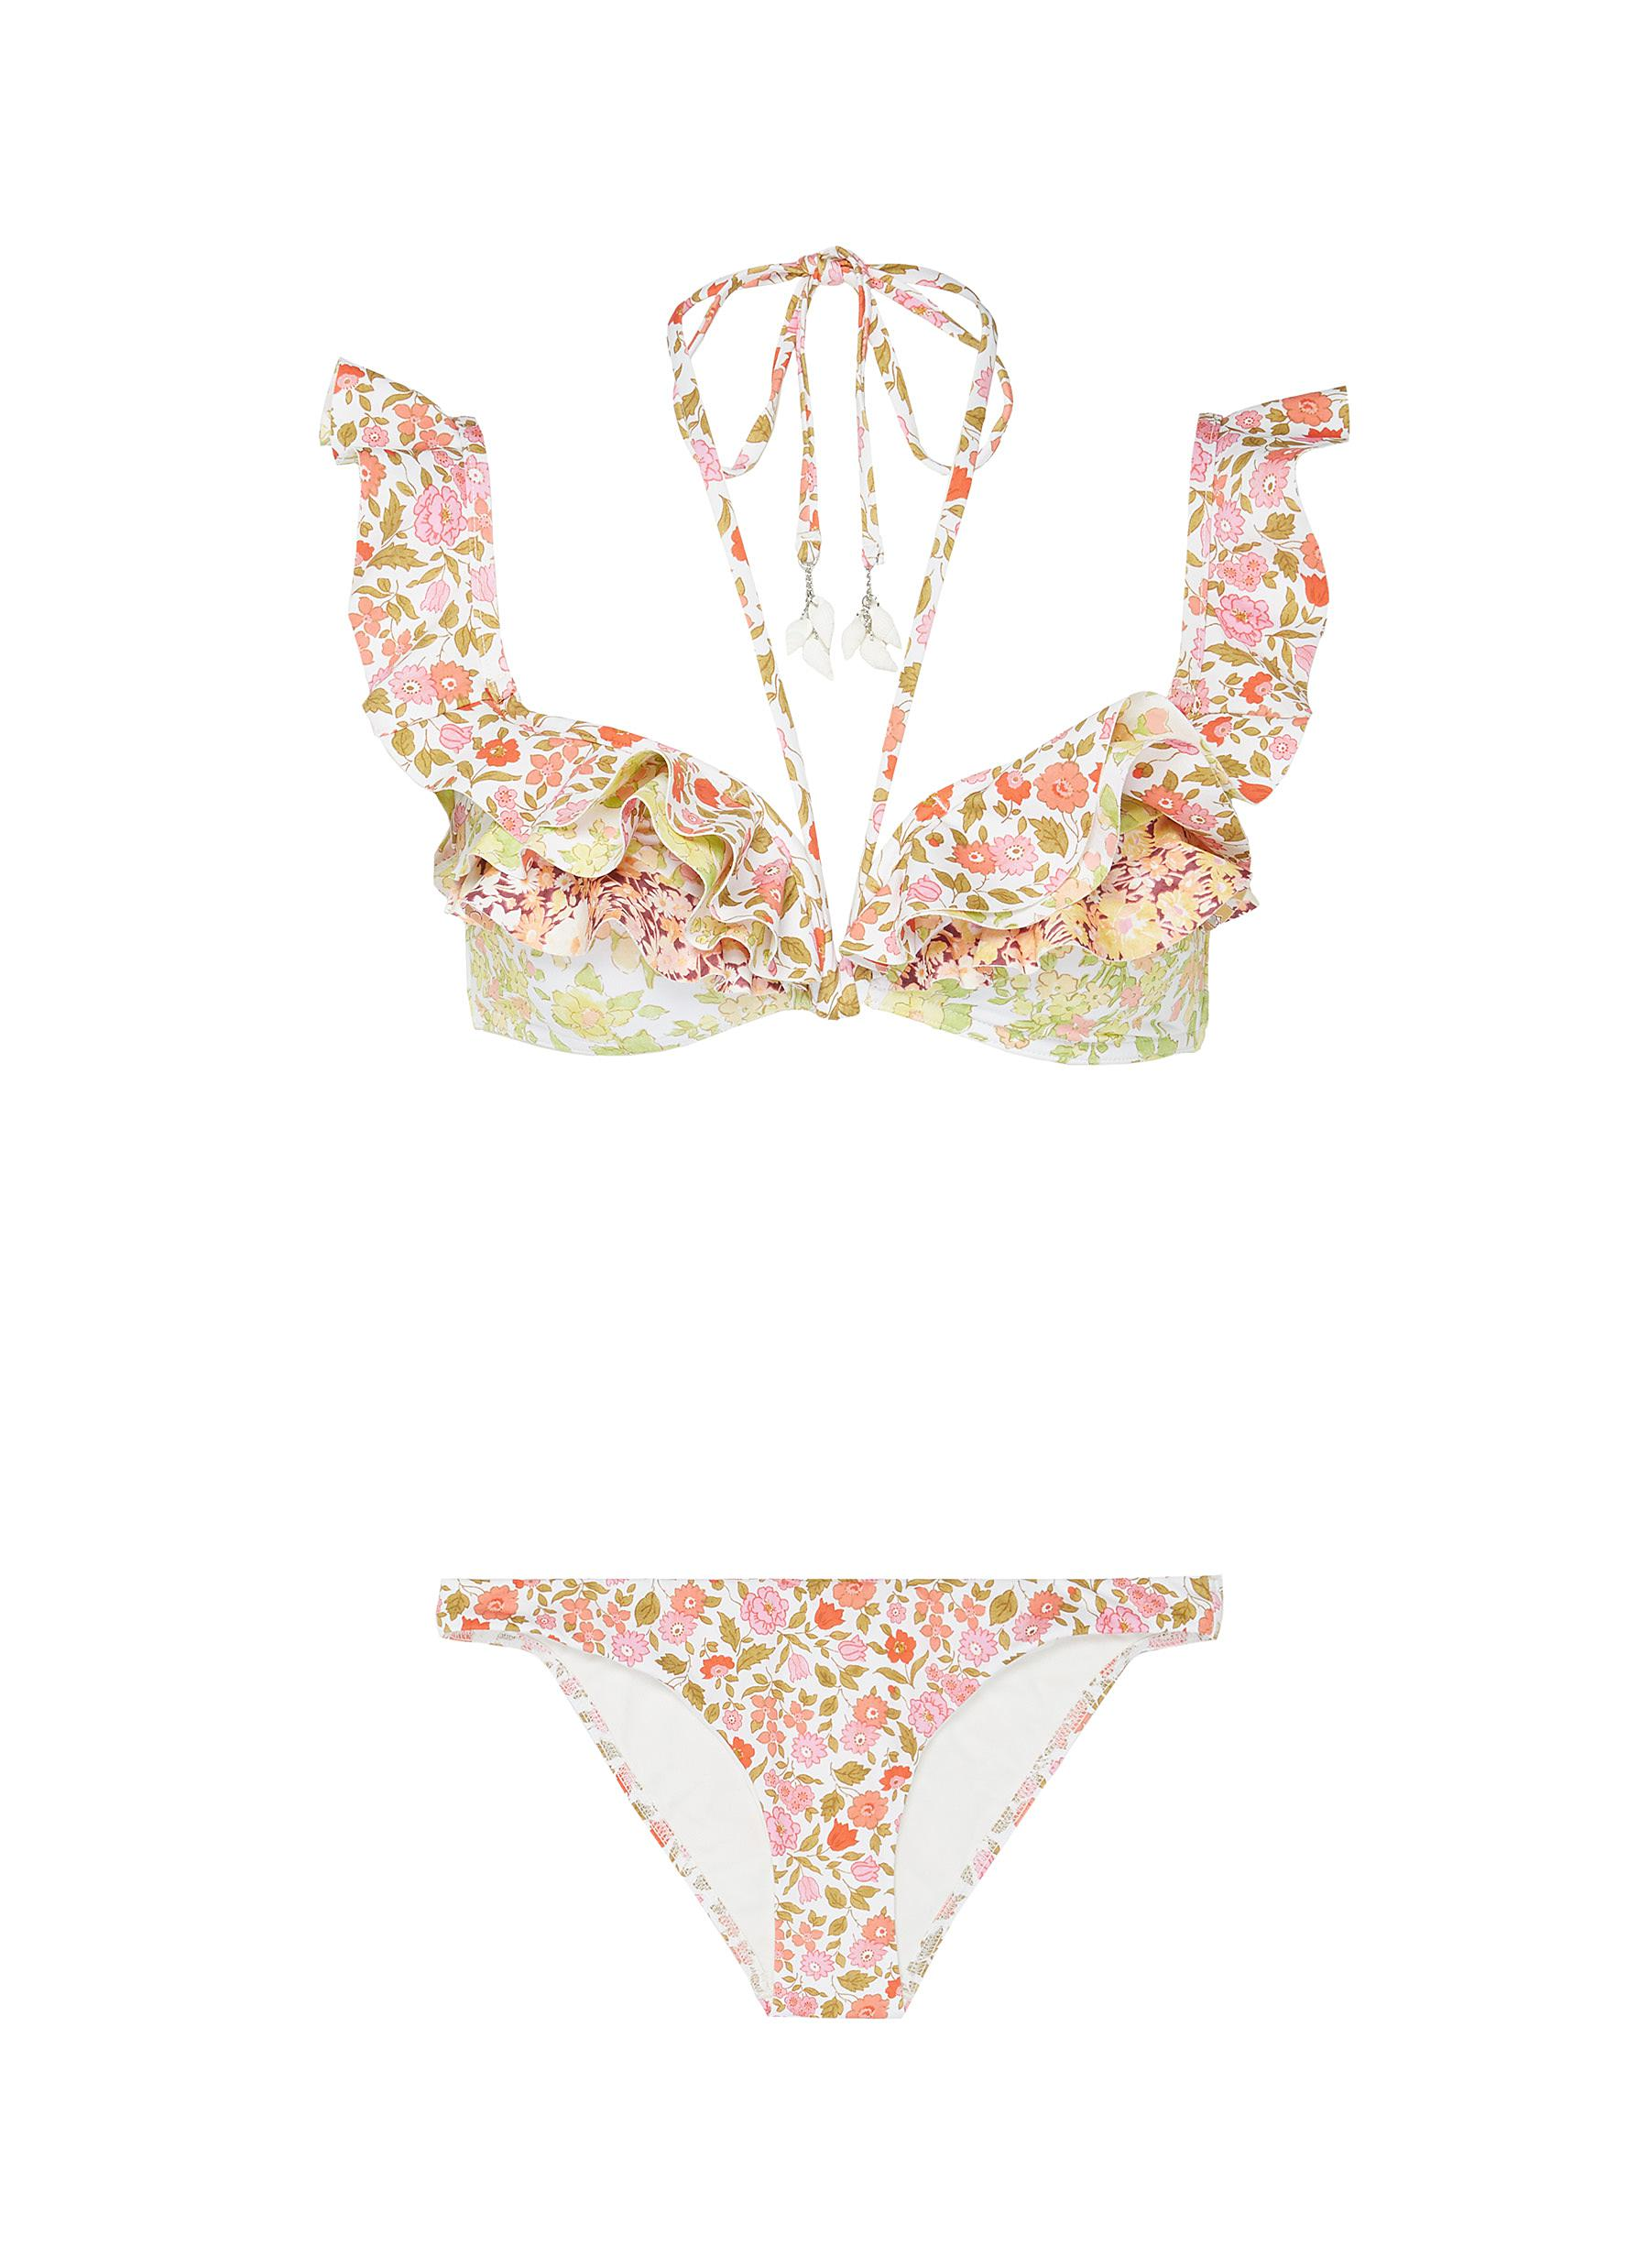 Goldie halter tie ruffle trim floral print bikini top by Zimmermann